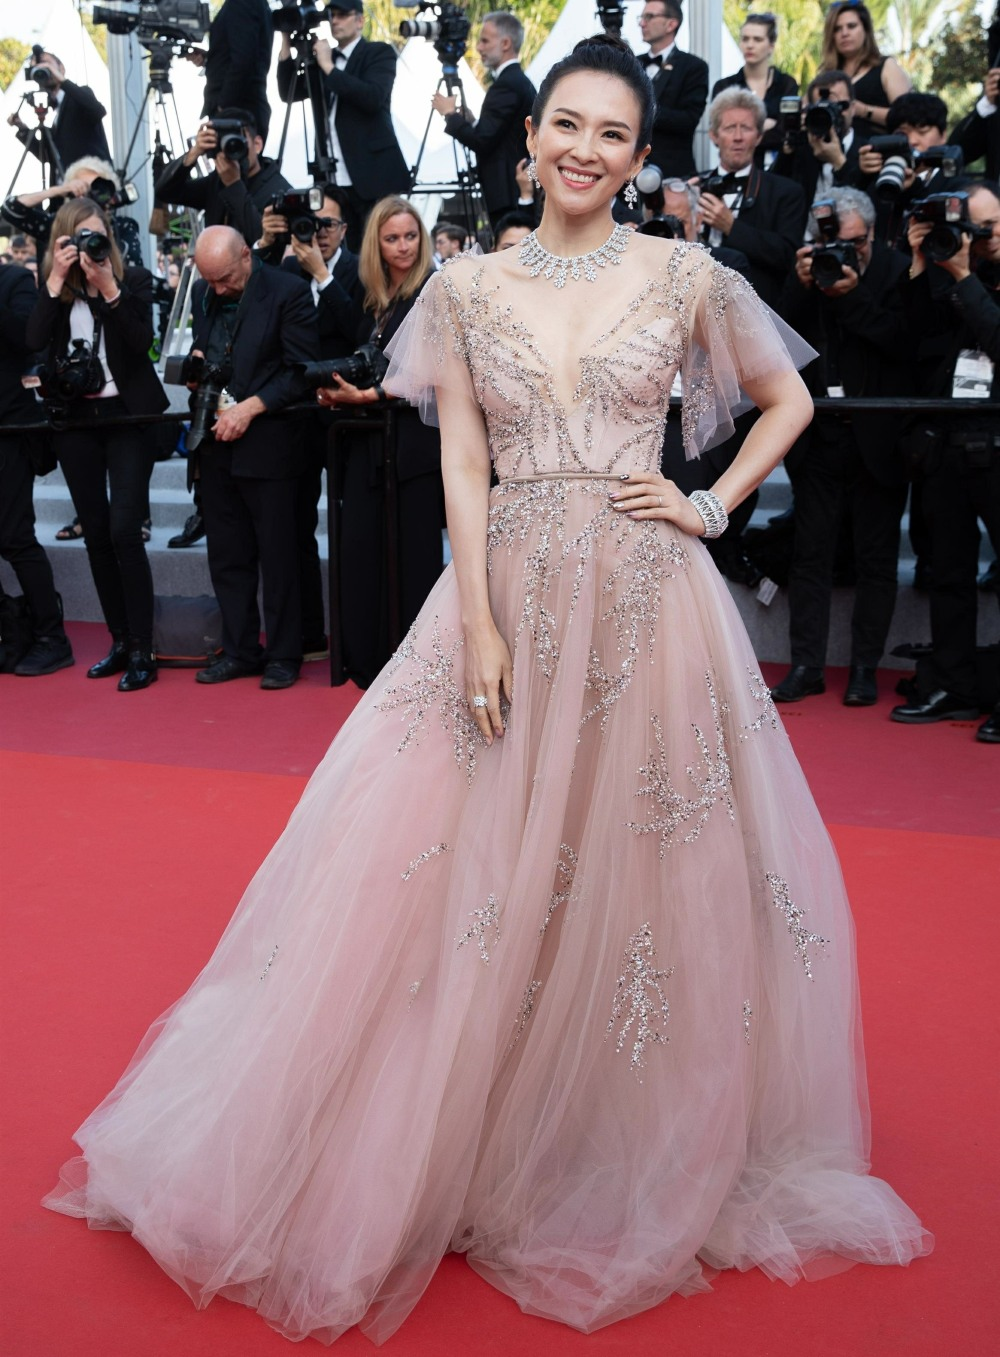 Red carpet arrivals for 'The Specials' premiere and closing ceremony at the Cannes Film Festival